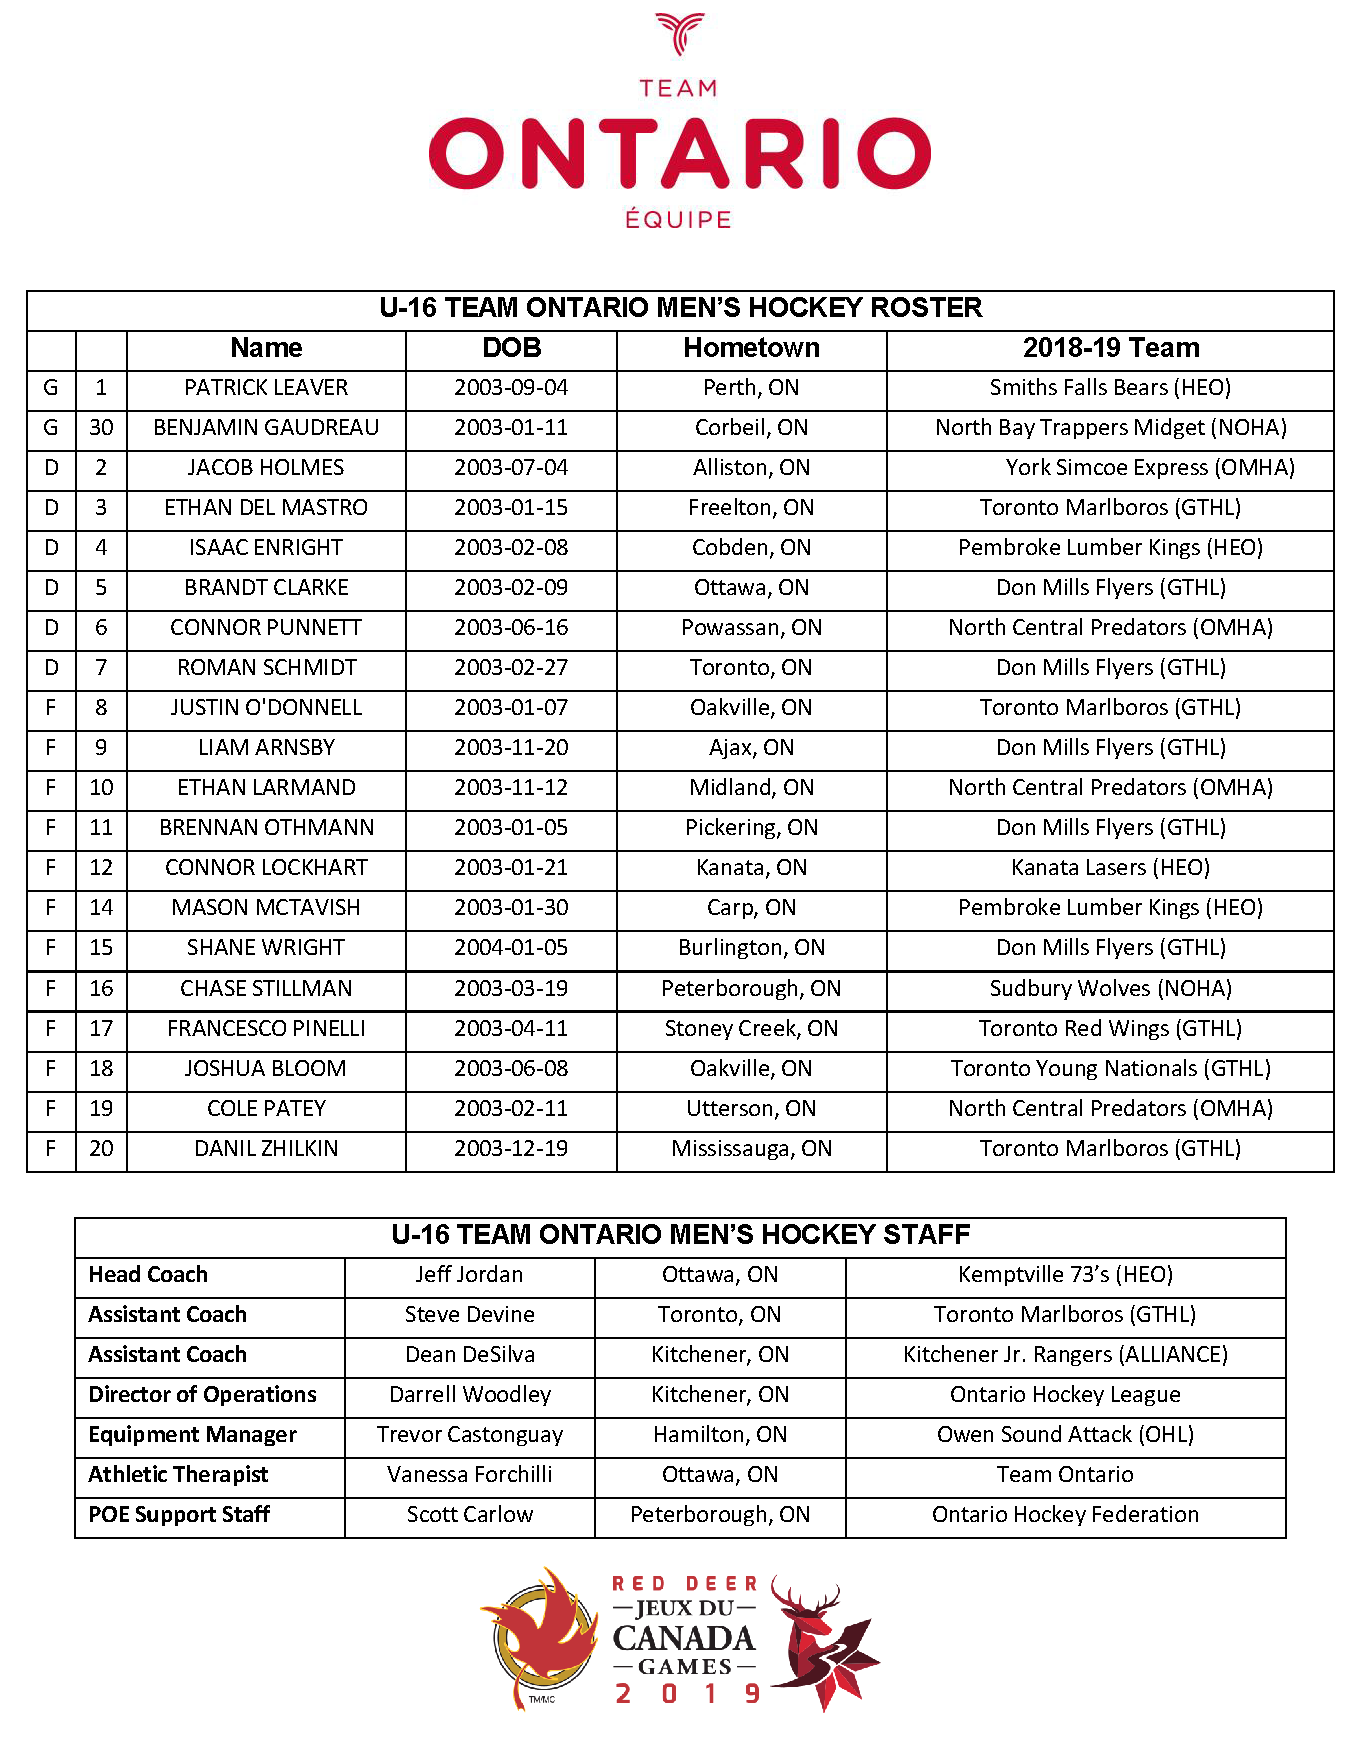 Team Ontario Men's Hockey Roster